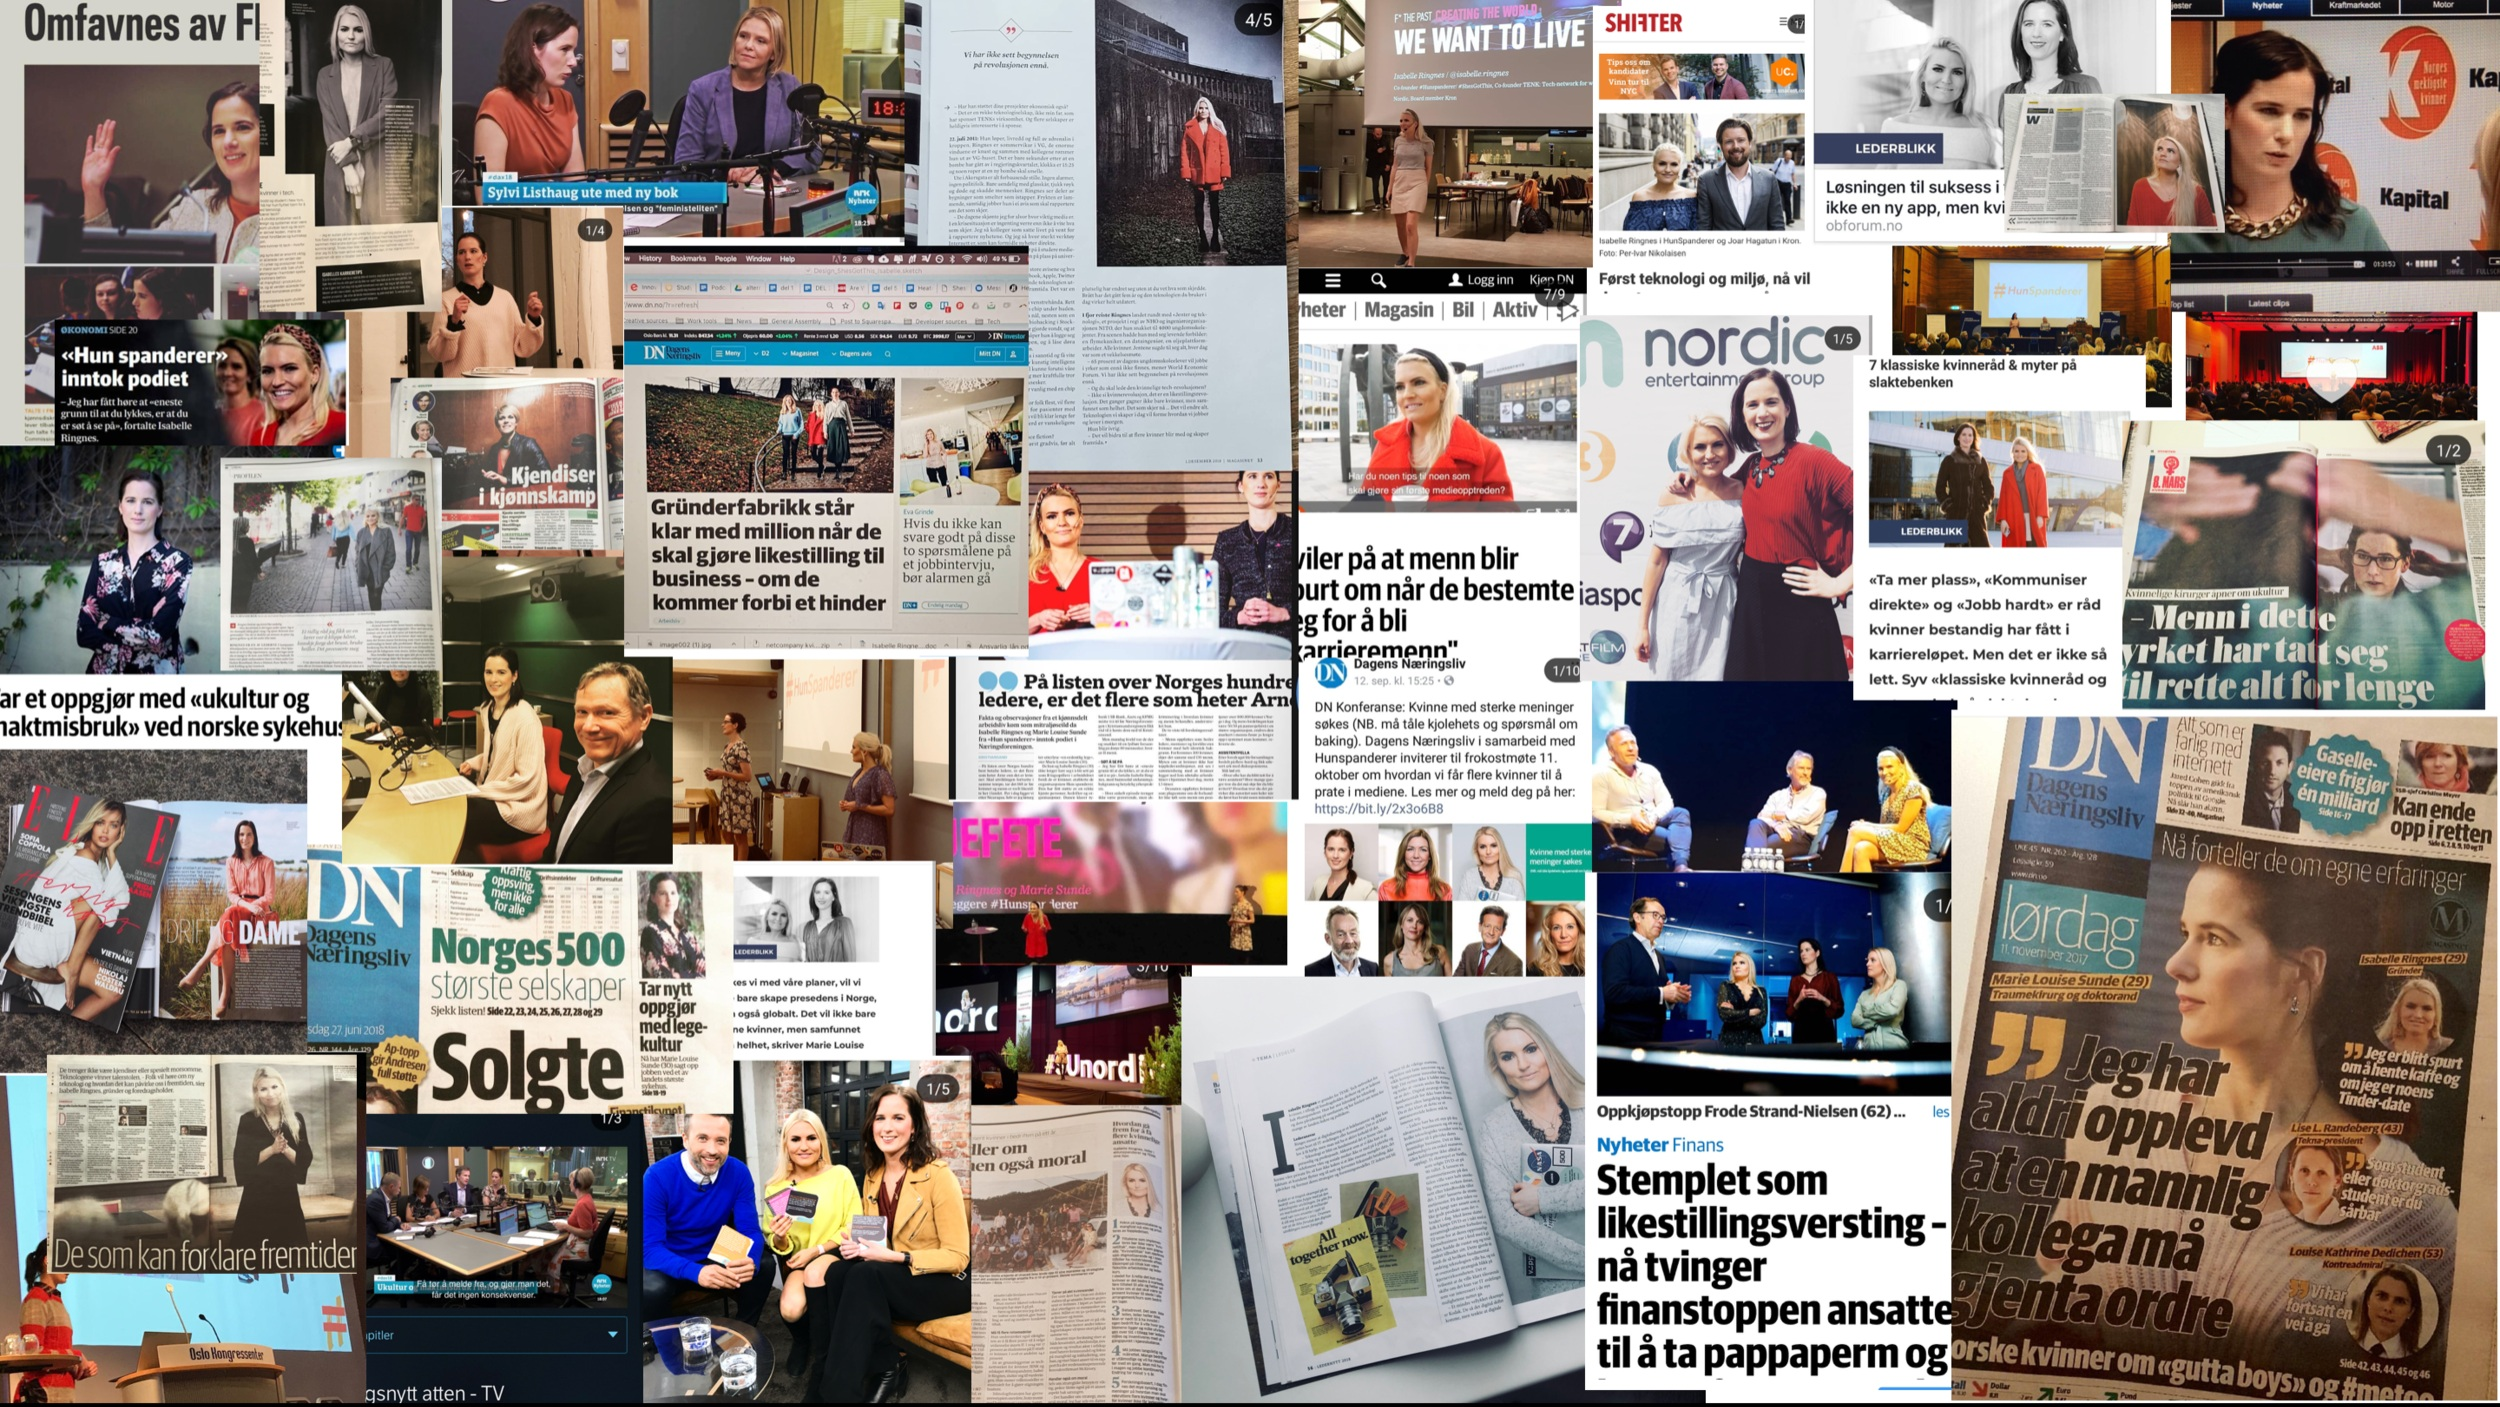 Media coverage from the leading media channels in Norway